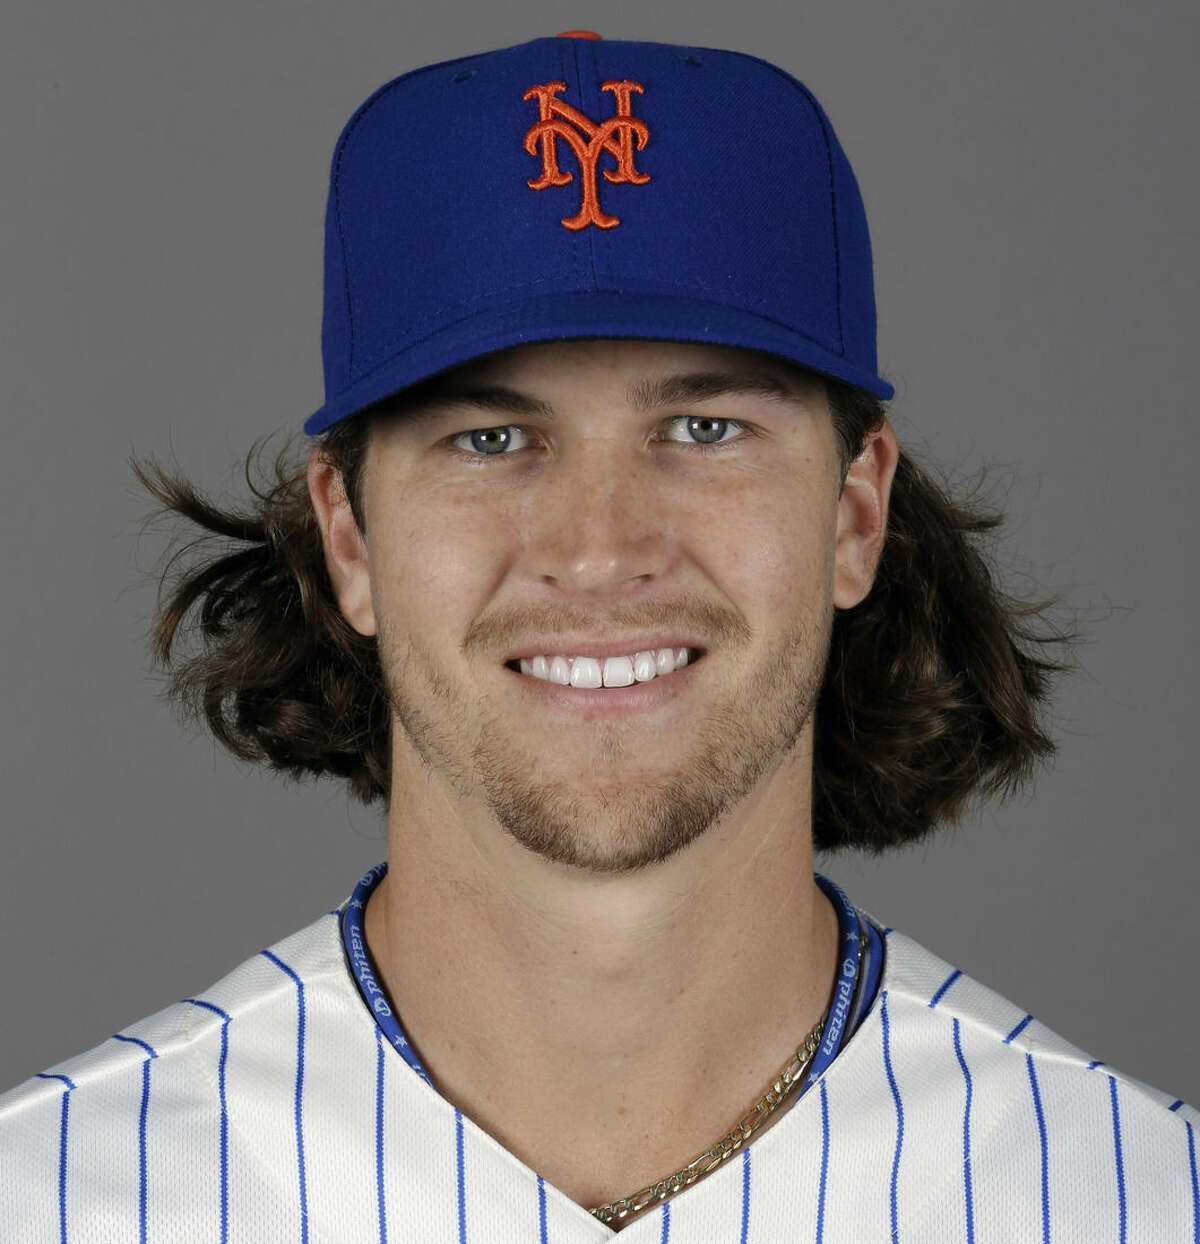 FILE - This is a 2014, file photo showing pitcher Jacob deGrom of the New York Mets baseball team. It's postseason awards time in baseball, starting with the Rookies of the Year. DeGrom has been voted NL Rookie of the Year the Baseball Writers' Association of America announced Monday, Nov. 10, 2014. (AP Photo/Jeff Roberson, File)